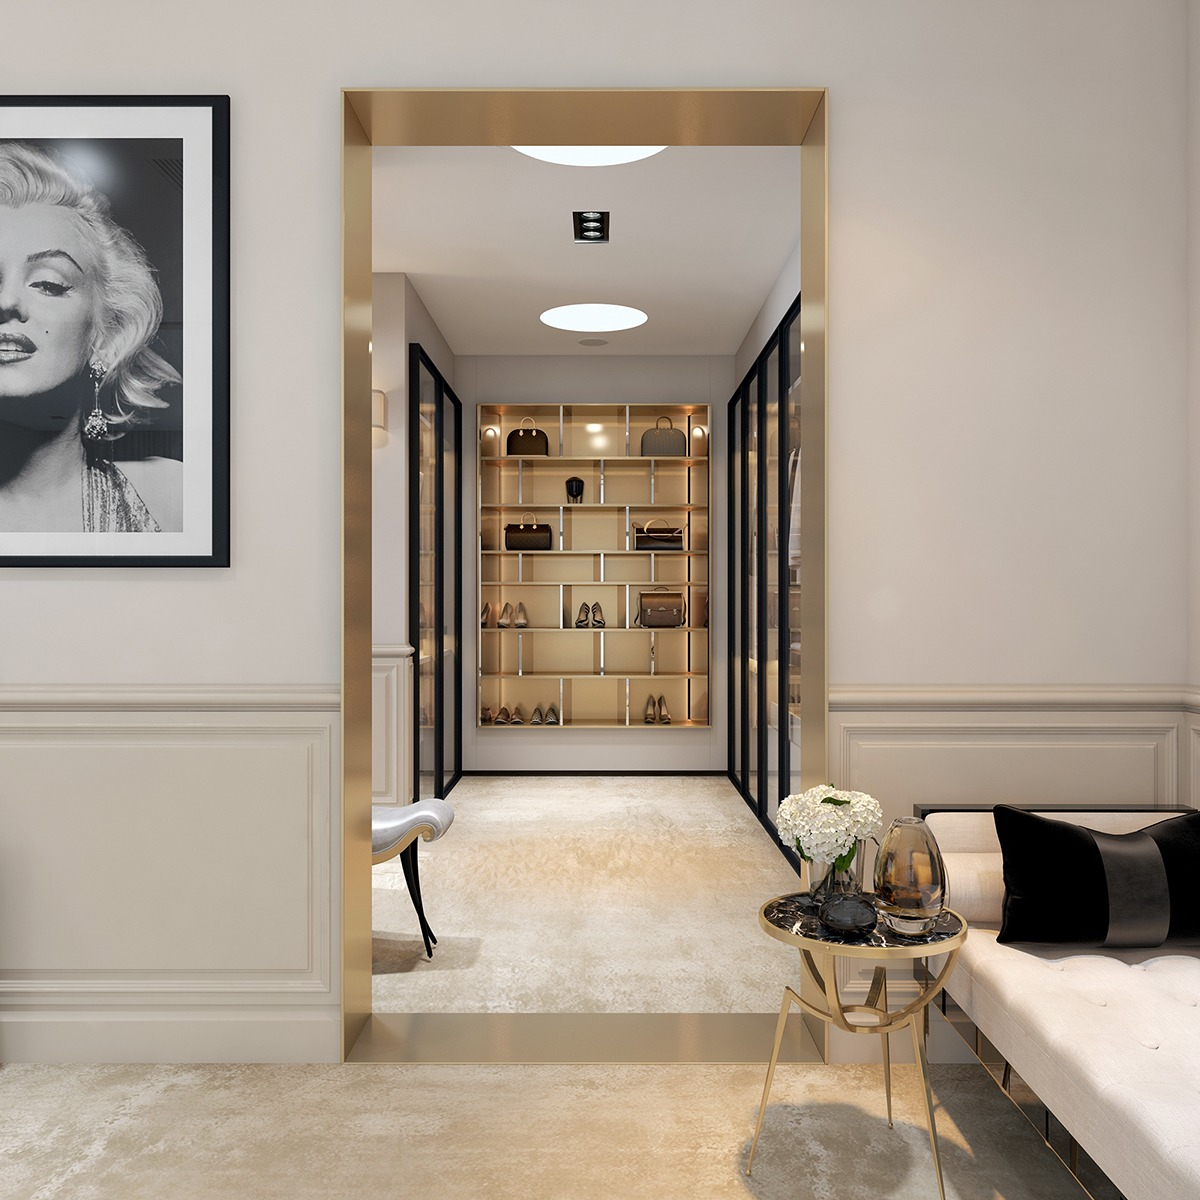 Ultra Modern Interior Design: A Modern Art Deco Home Visualized In Two Styles